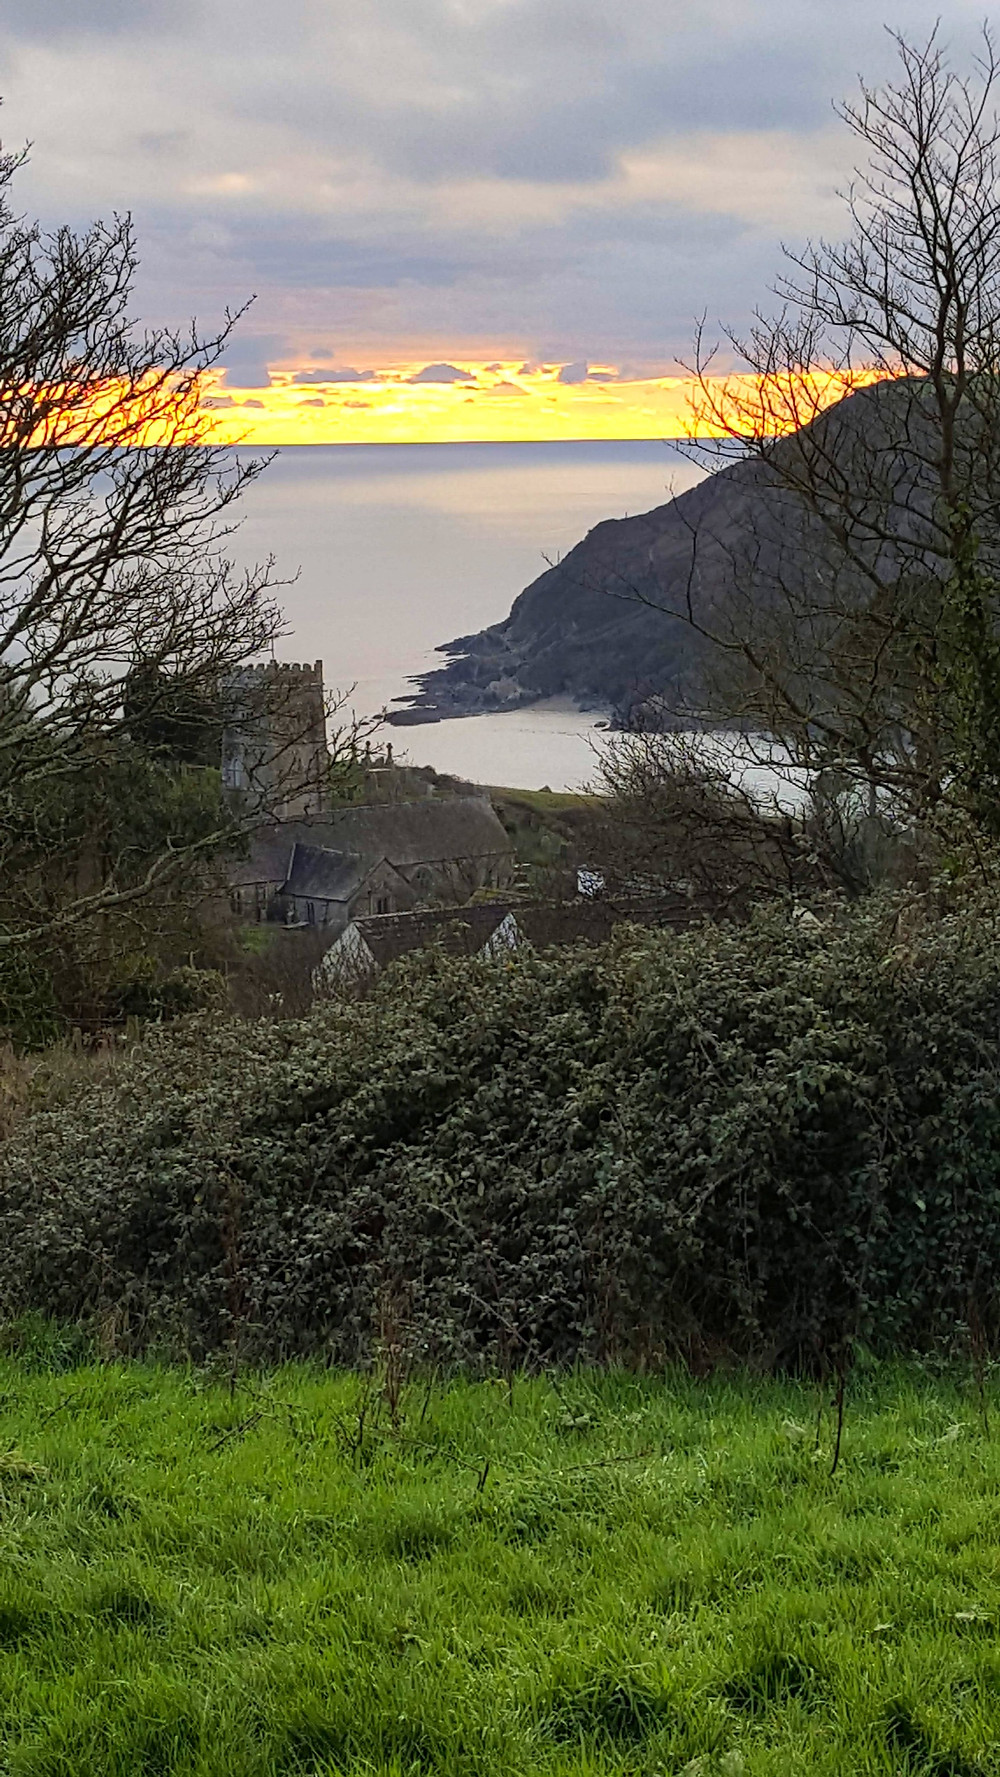 Green grass in the foreground, Talland Church and bay and sun setting in background.